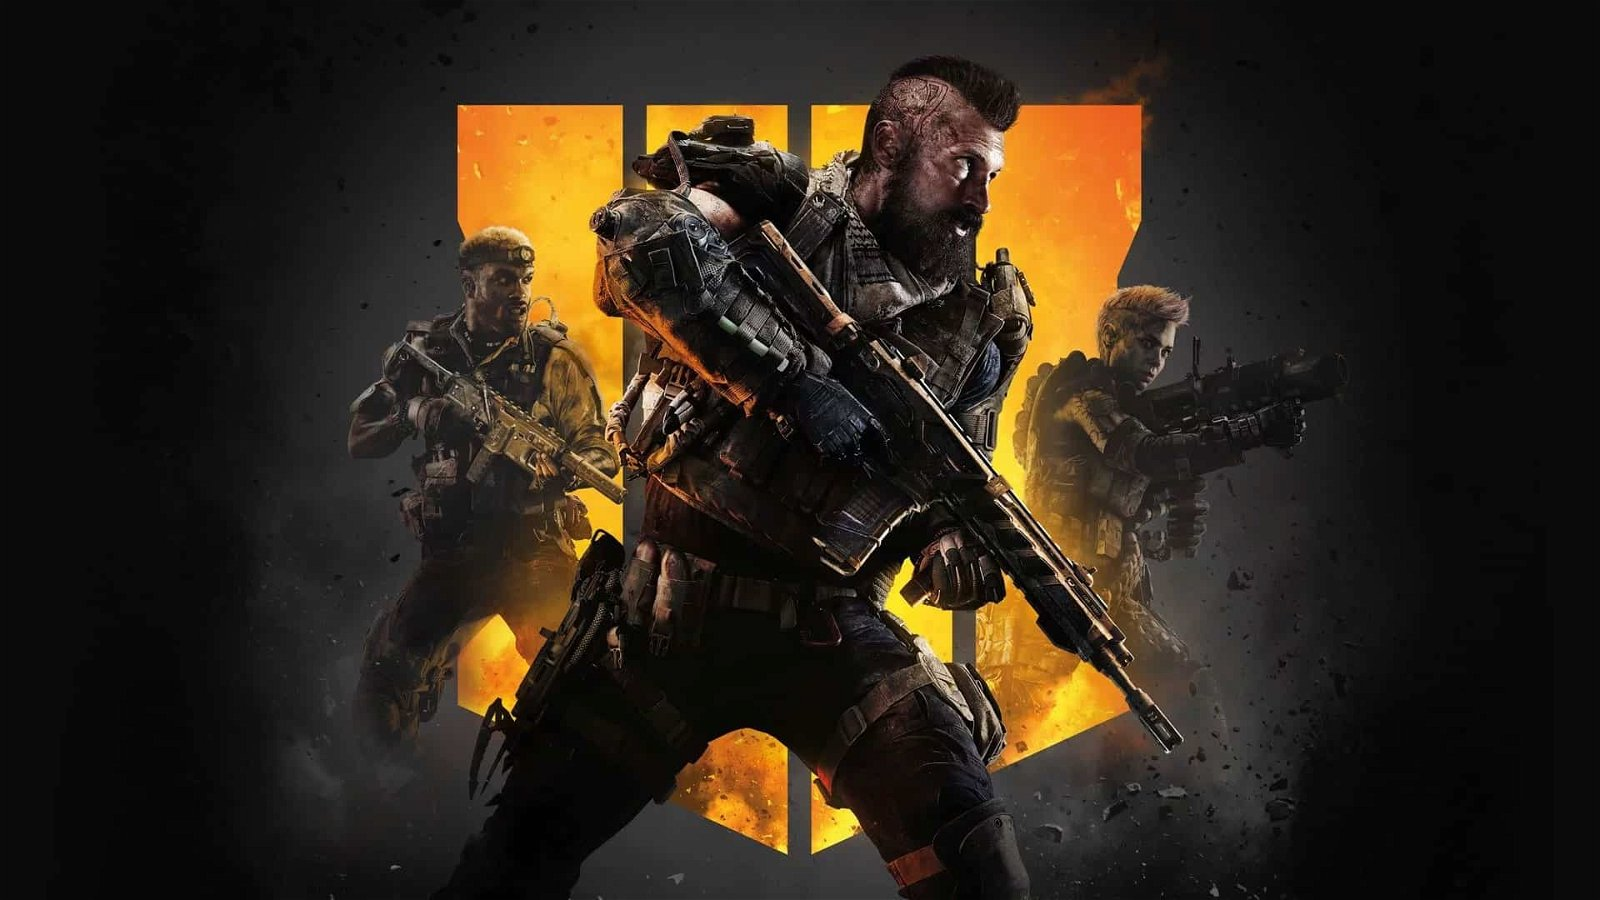 Call of Duty: Black Ops 4 — Multiplayer And A Deeper Gameplay Experience 1